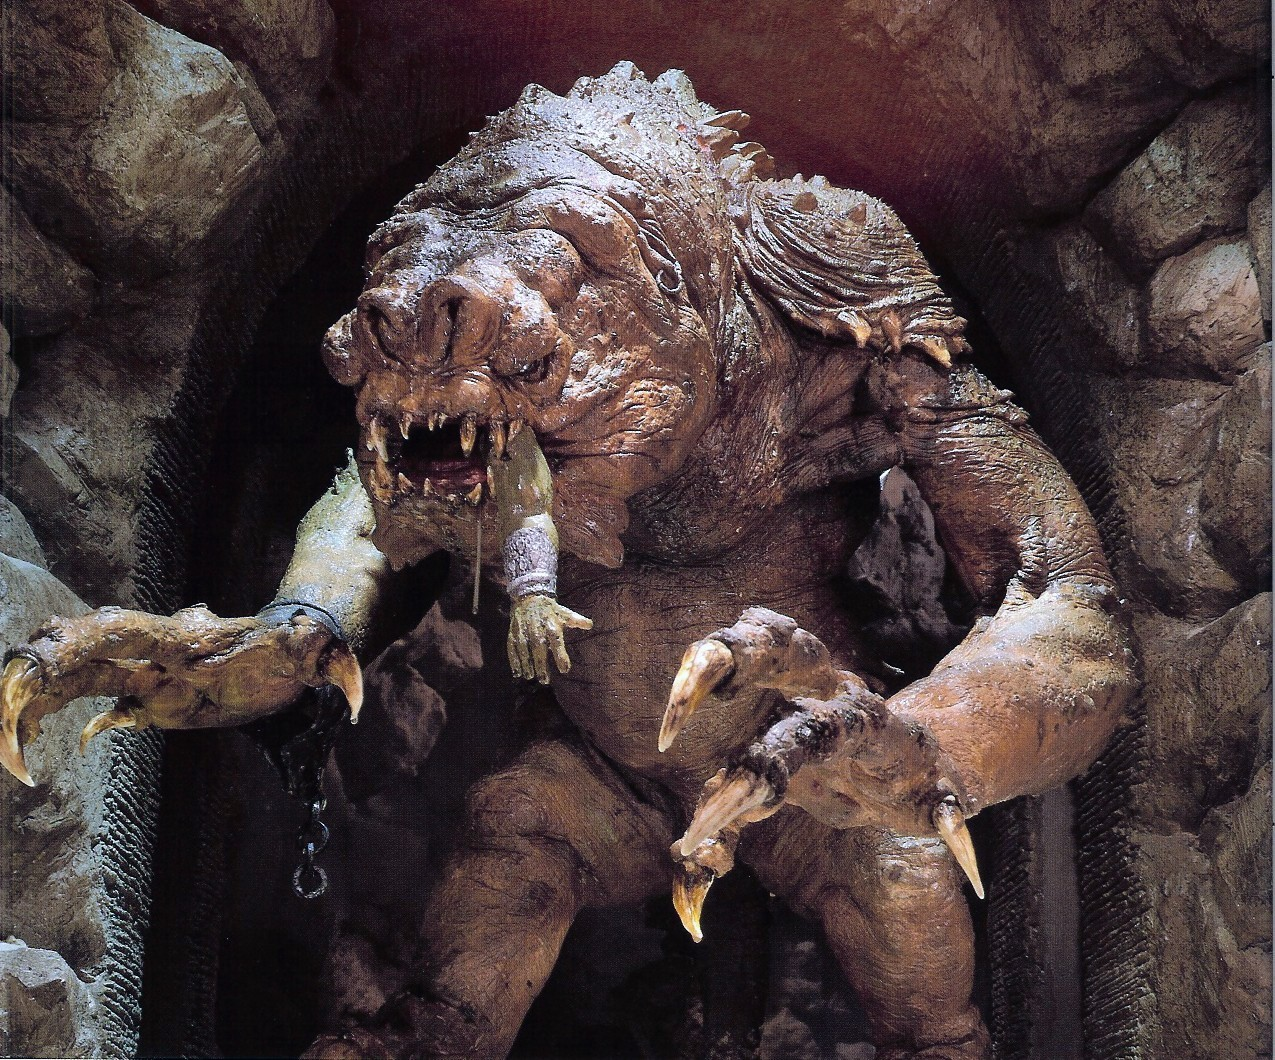 Rancor CHRON 20 Characters That Scared The Life Out Of Us As Children